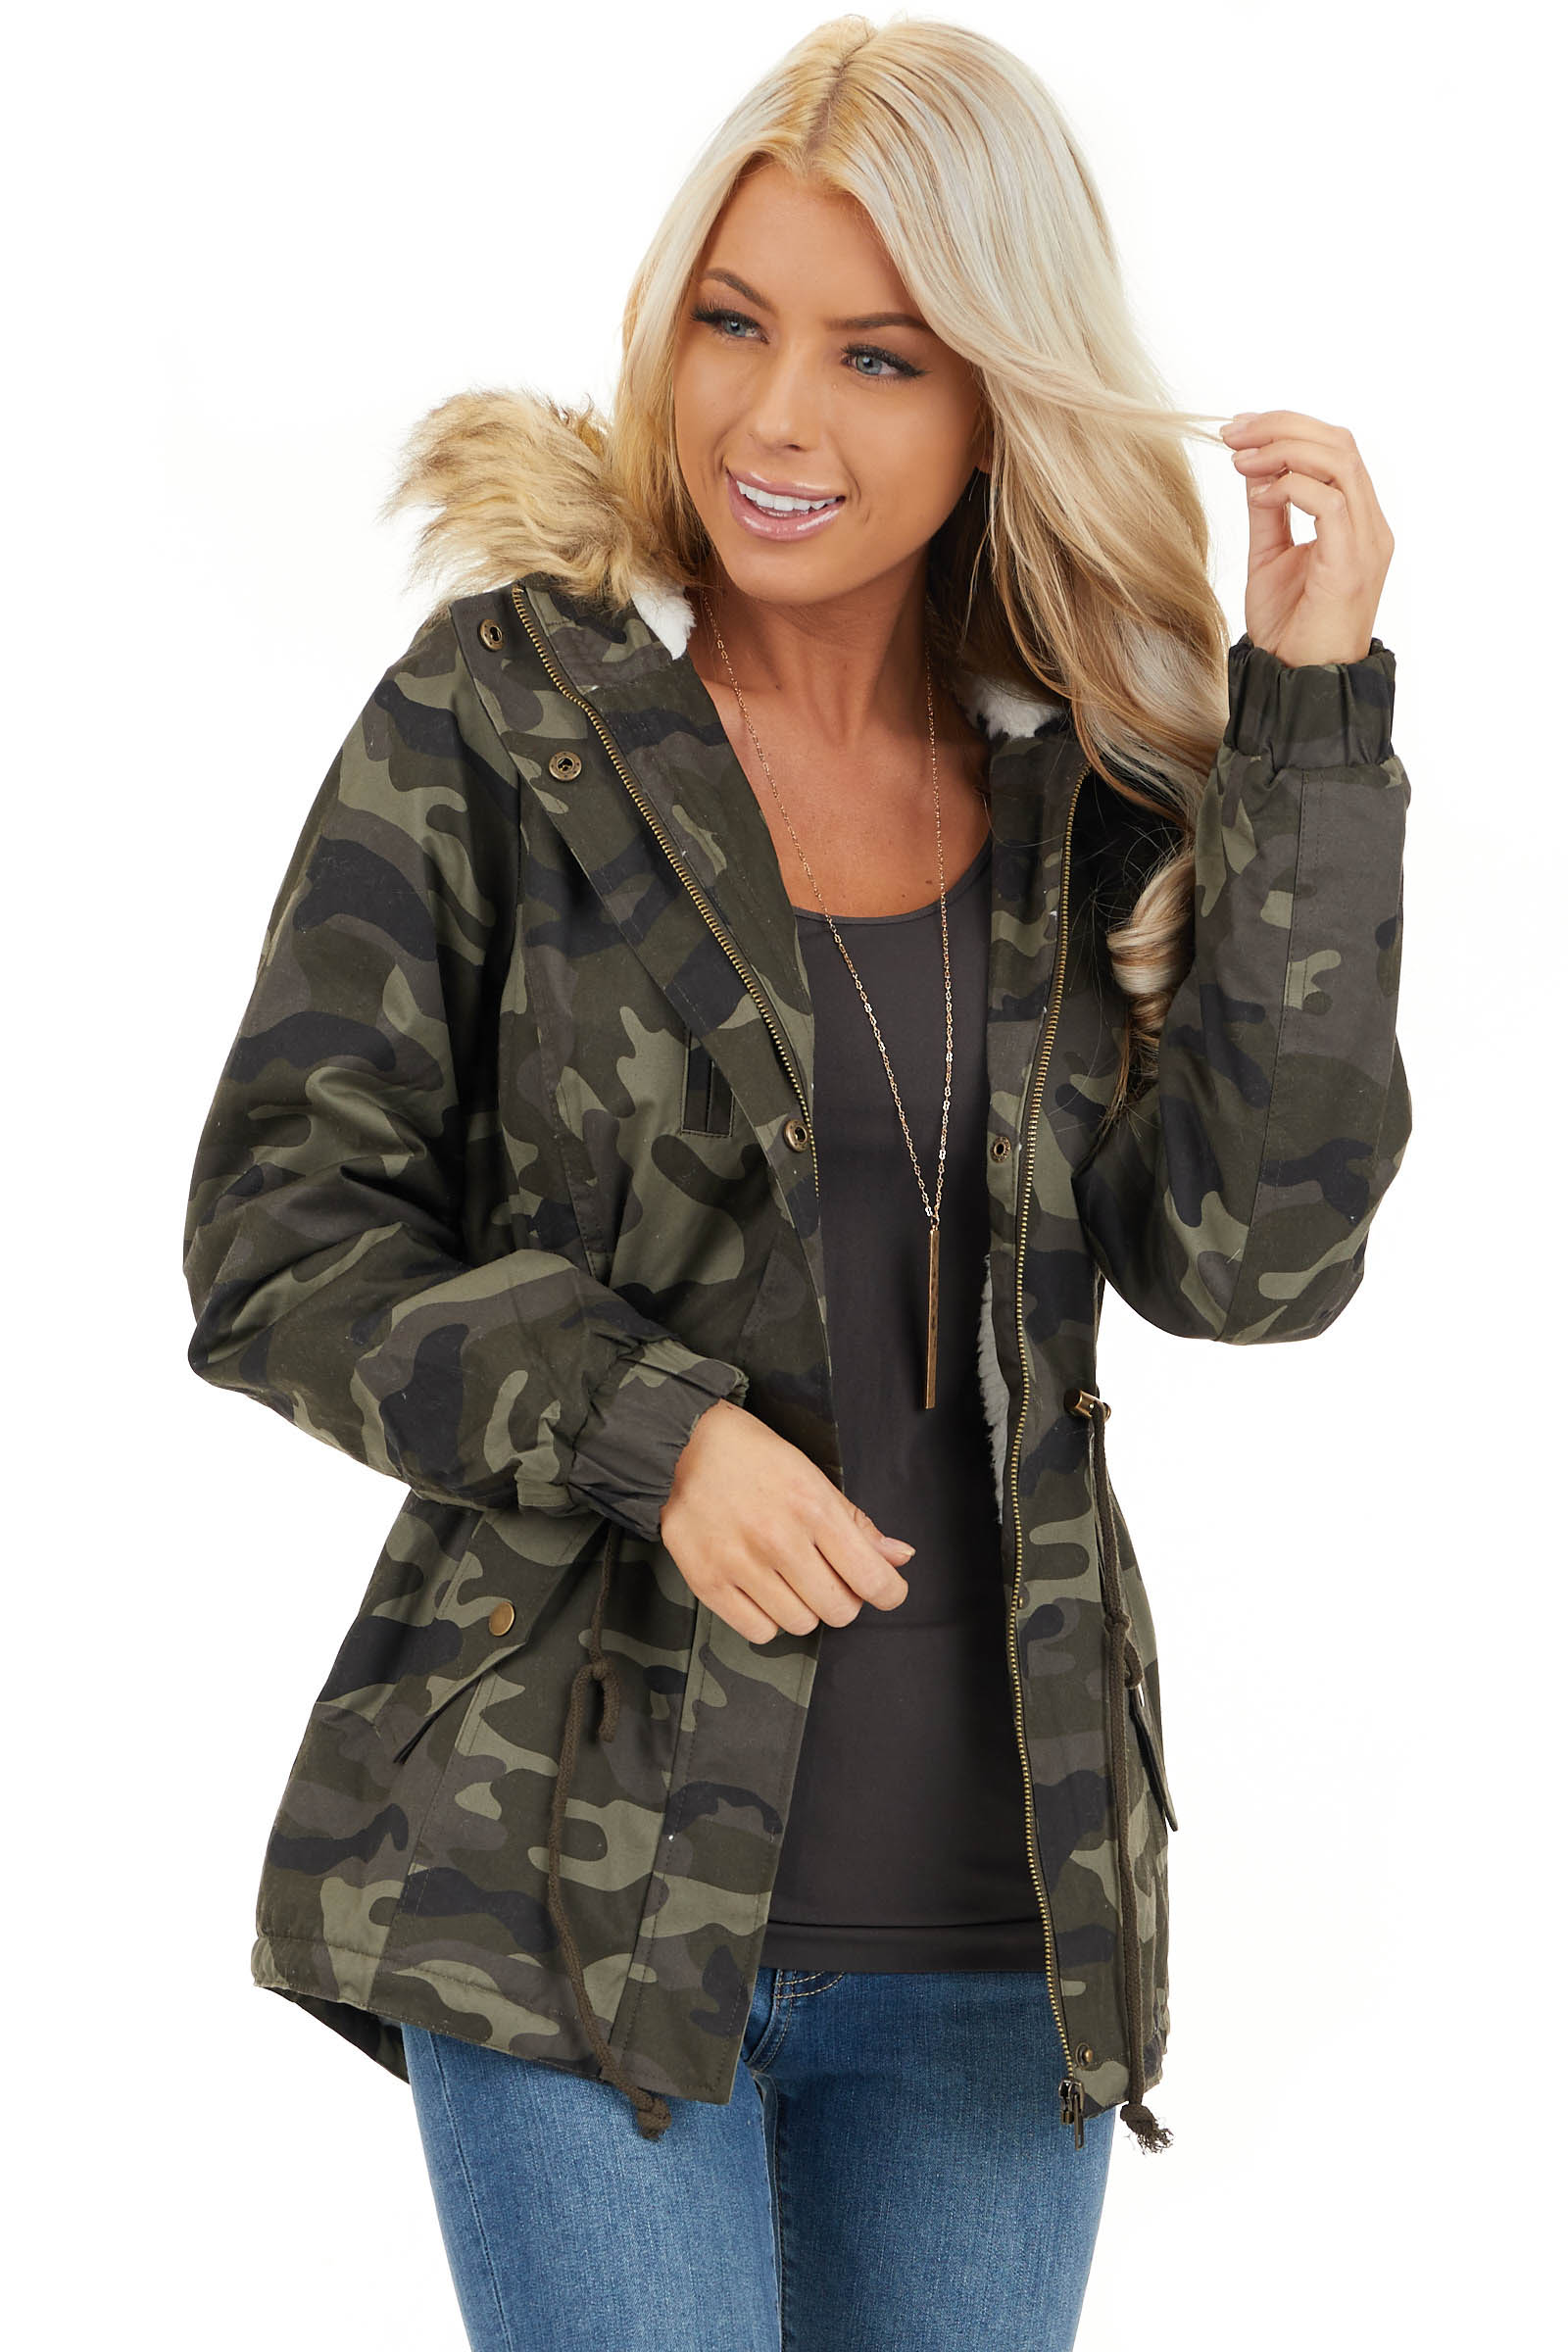 Olive Camo Print Jacket with Faux Fur Hood Detail front close up